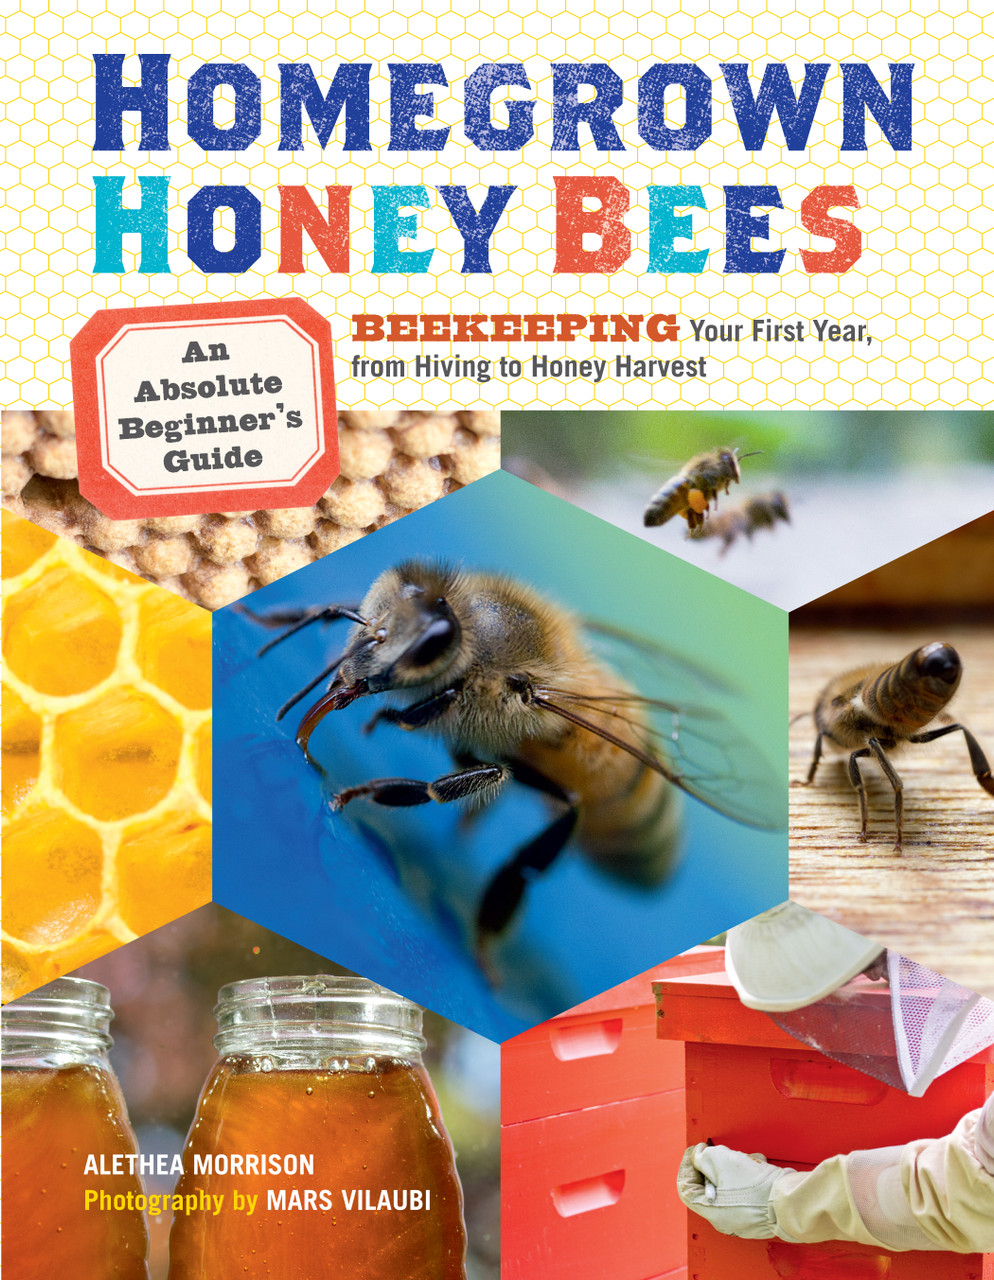 Brightly colored Homegrown Honey Bees book front cover